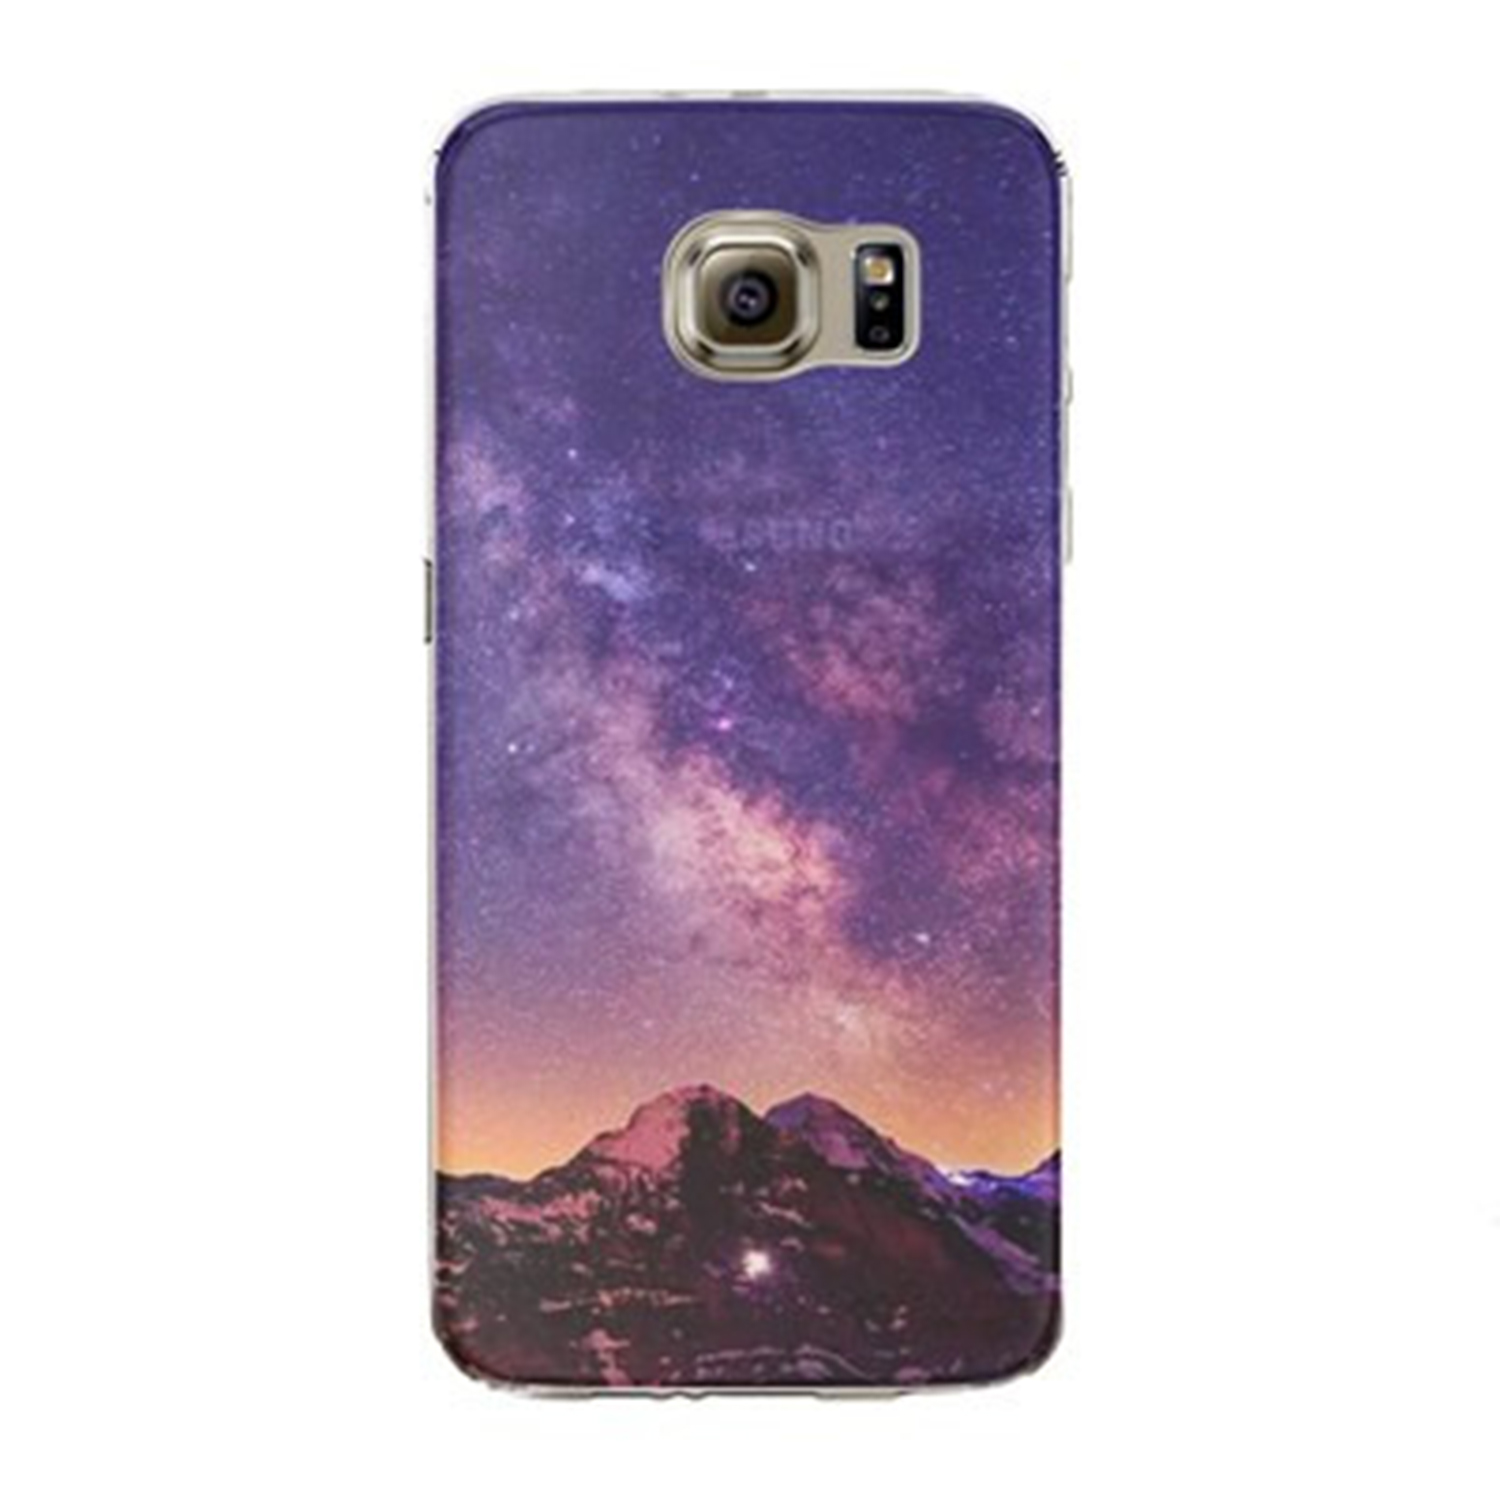 Kritzel Case Collection Galaxy S7 edge - Nature #318